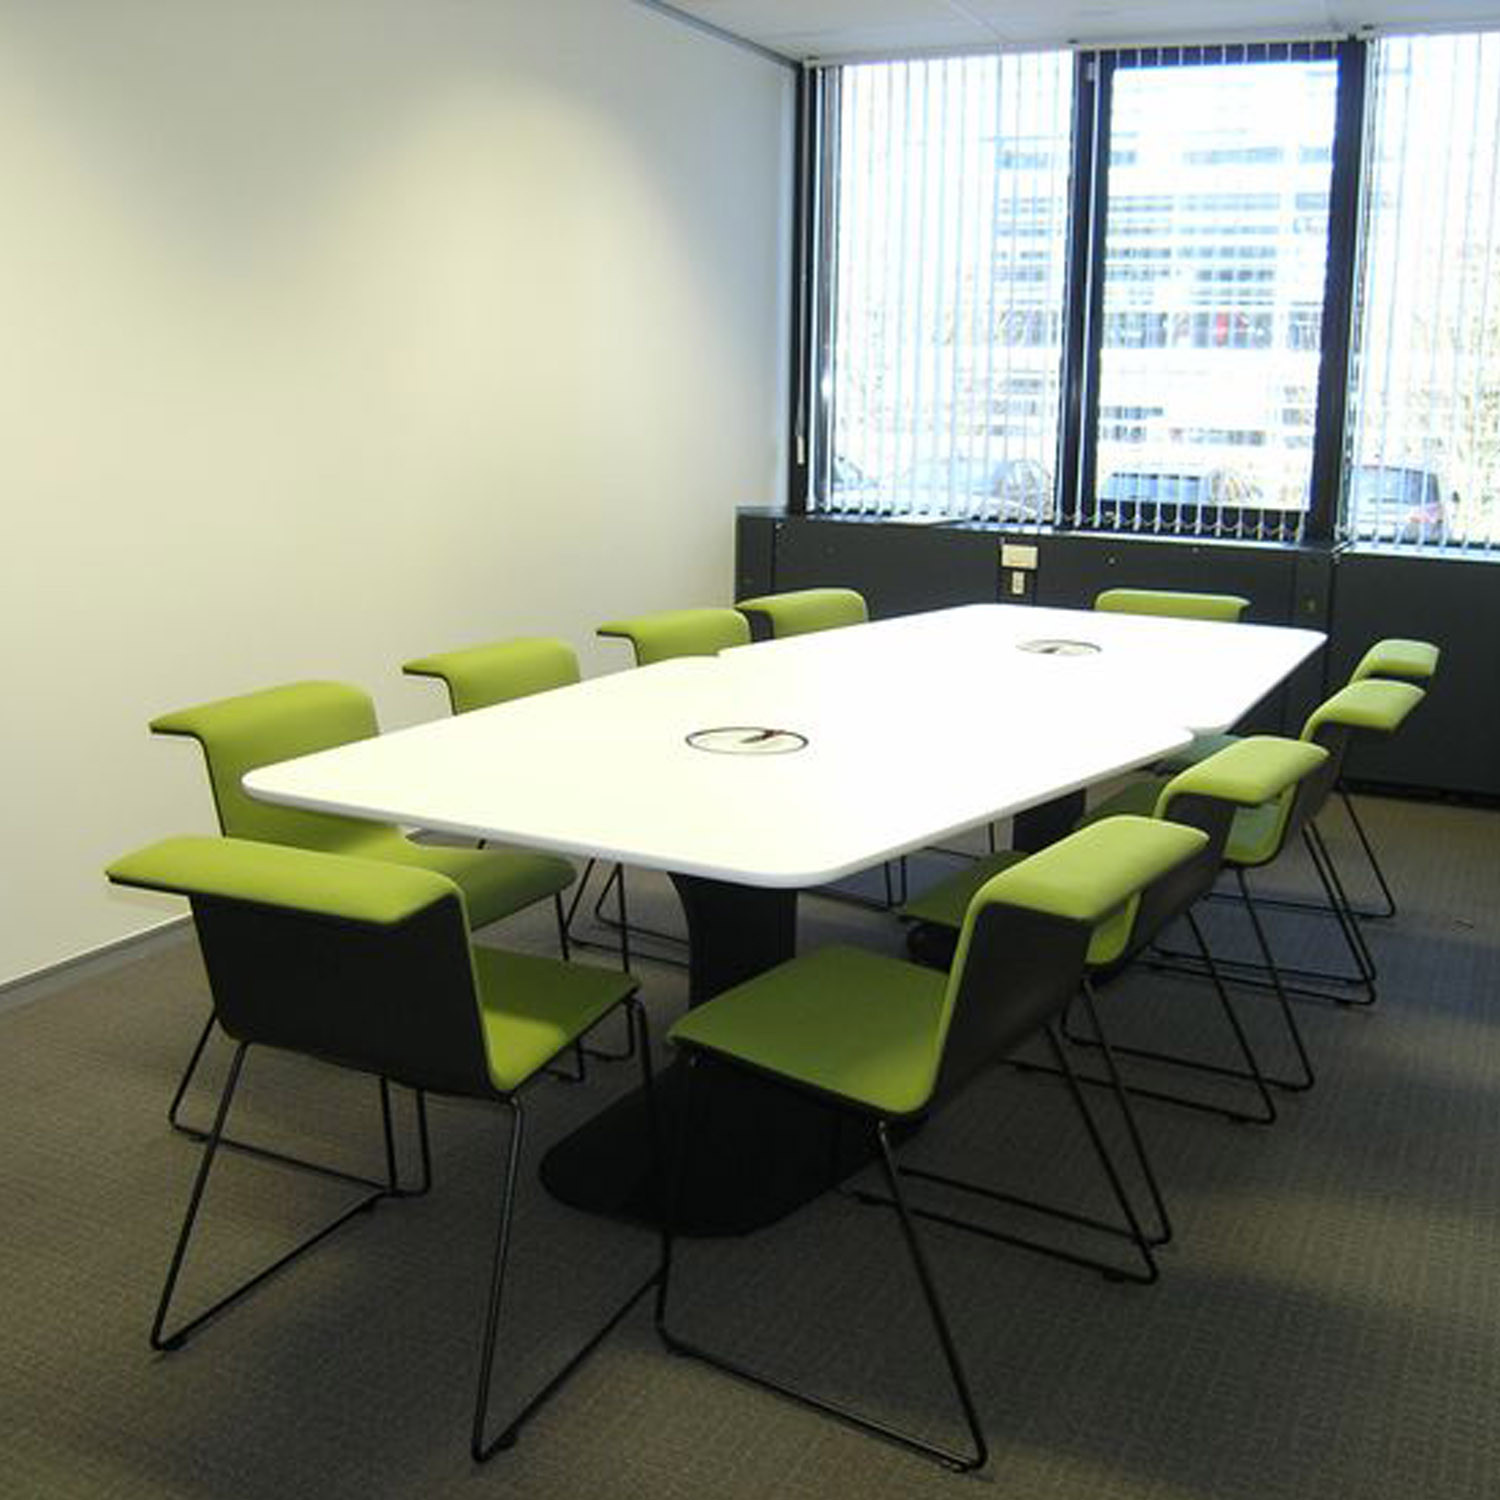 Kei Conference Table